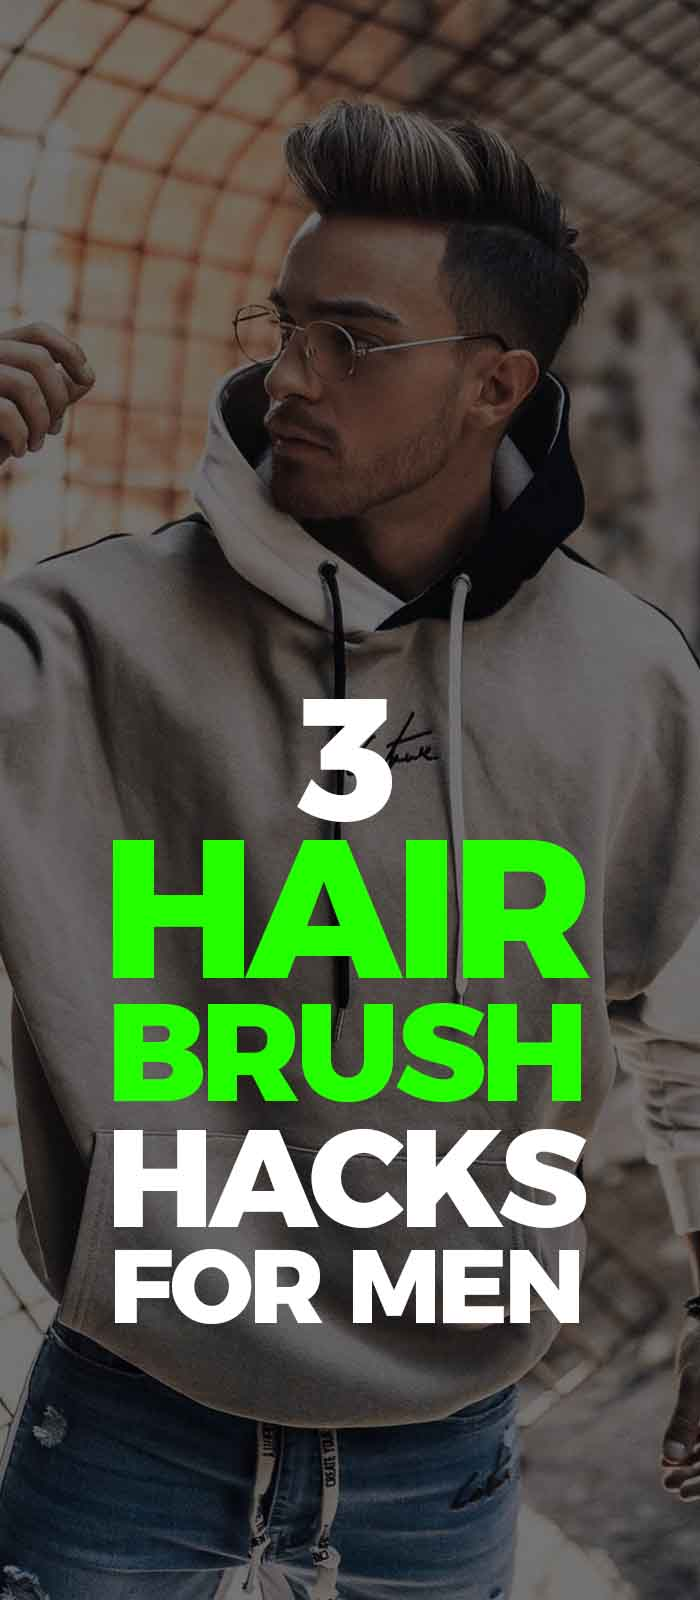 Hair Brush Hacks For Men!